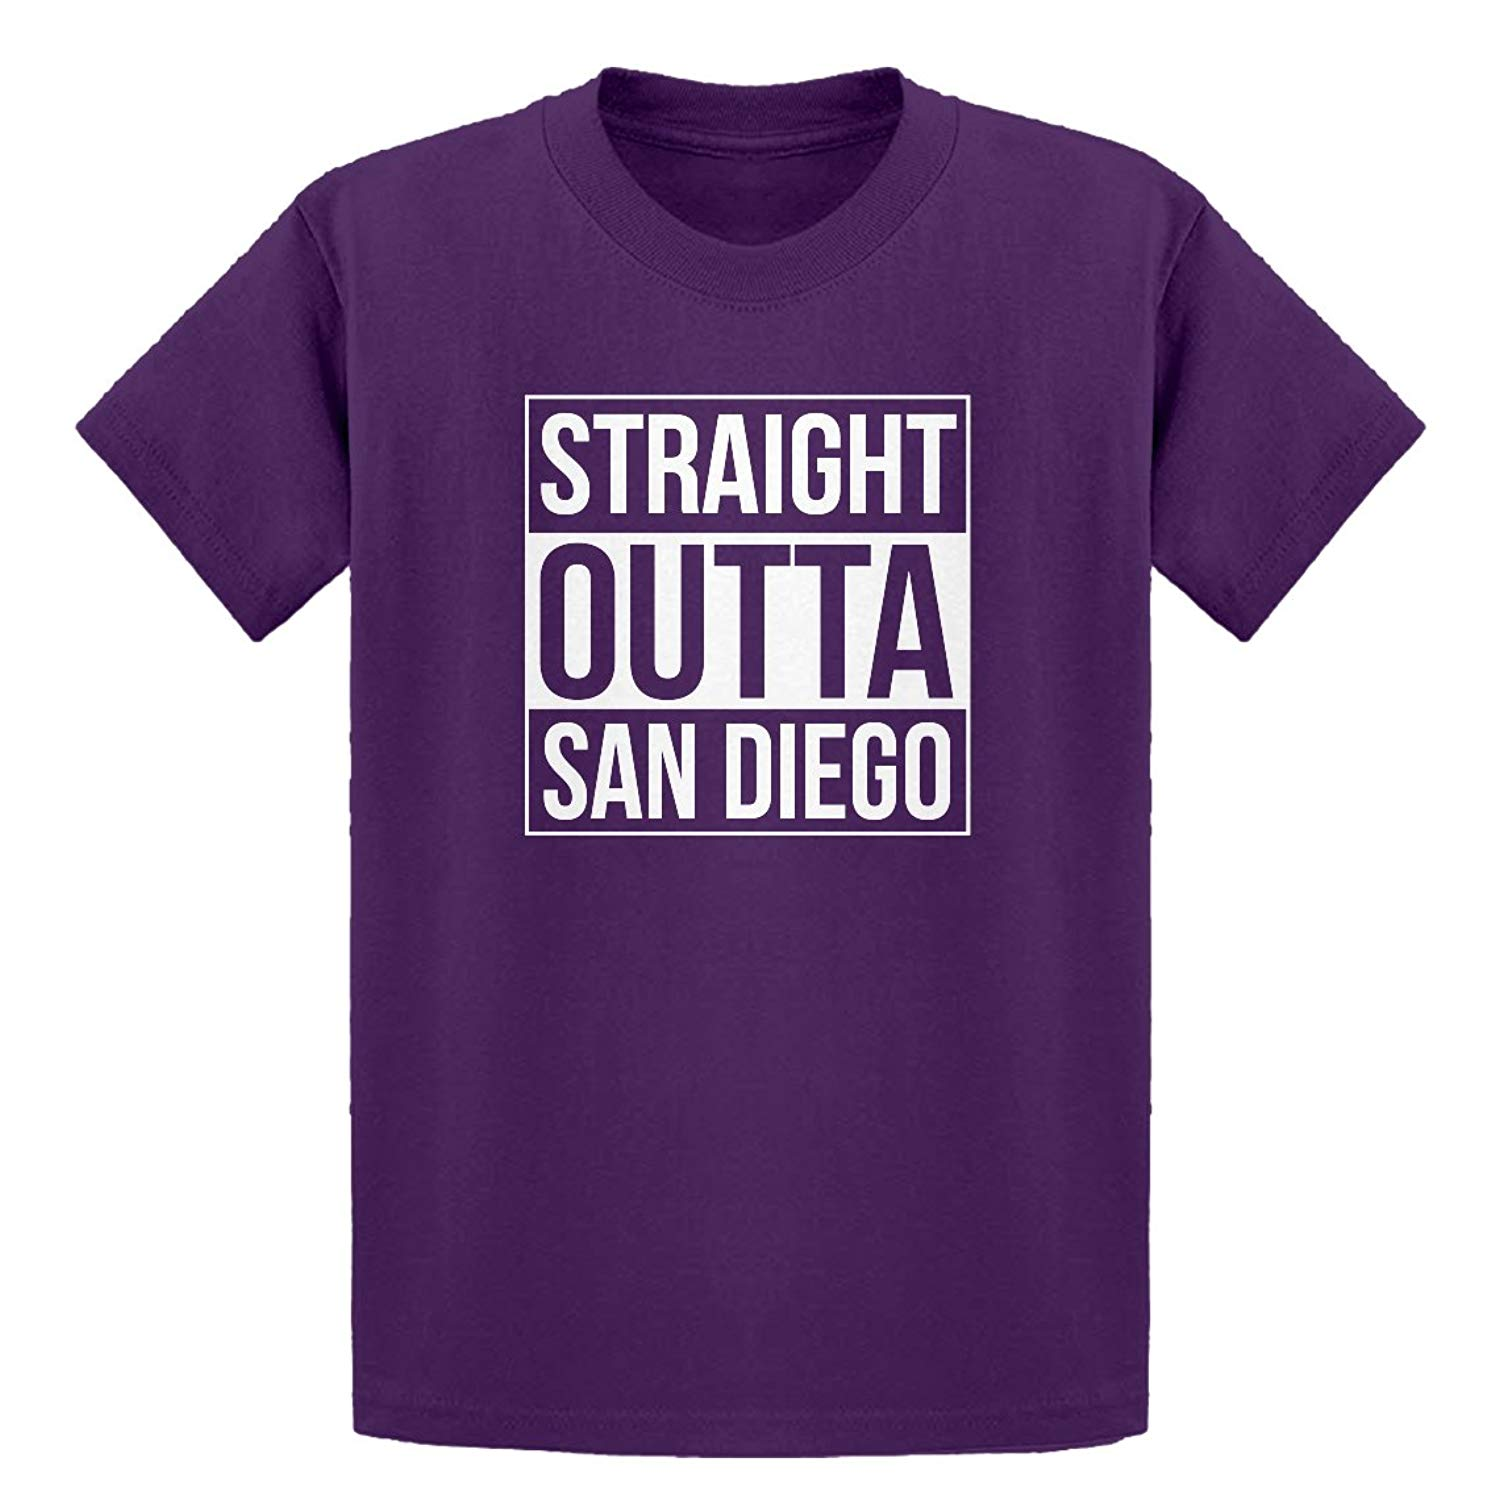 Indica Plateau Youth Straight Outta San Diego Kids T-Shirt